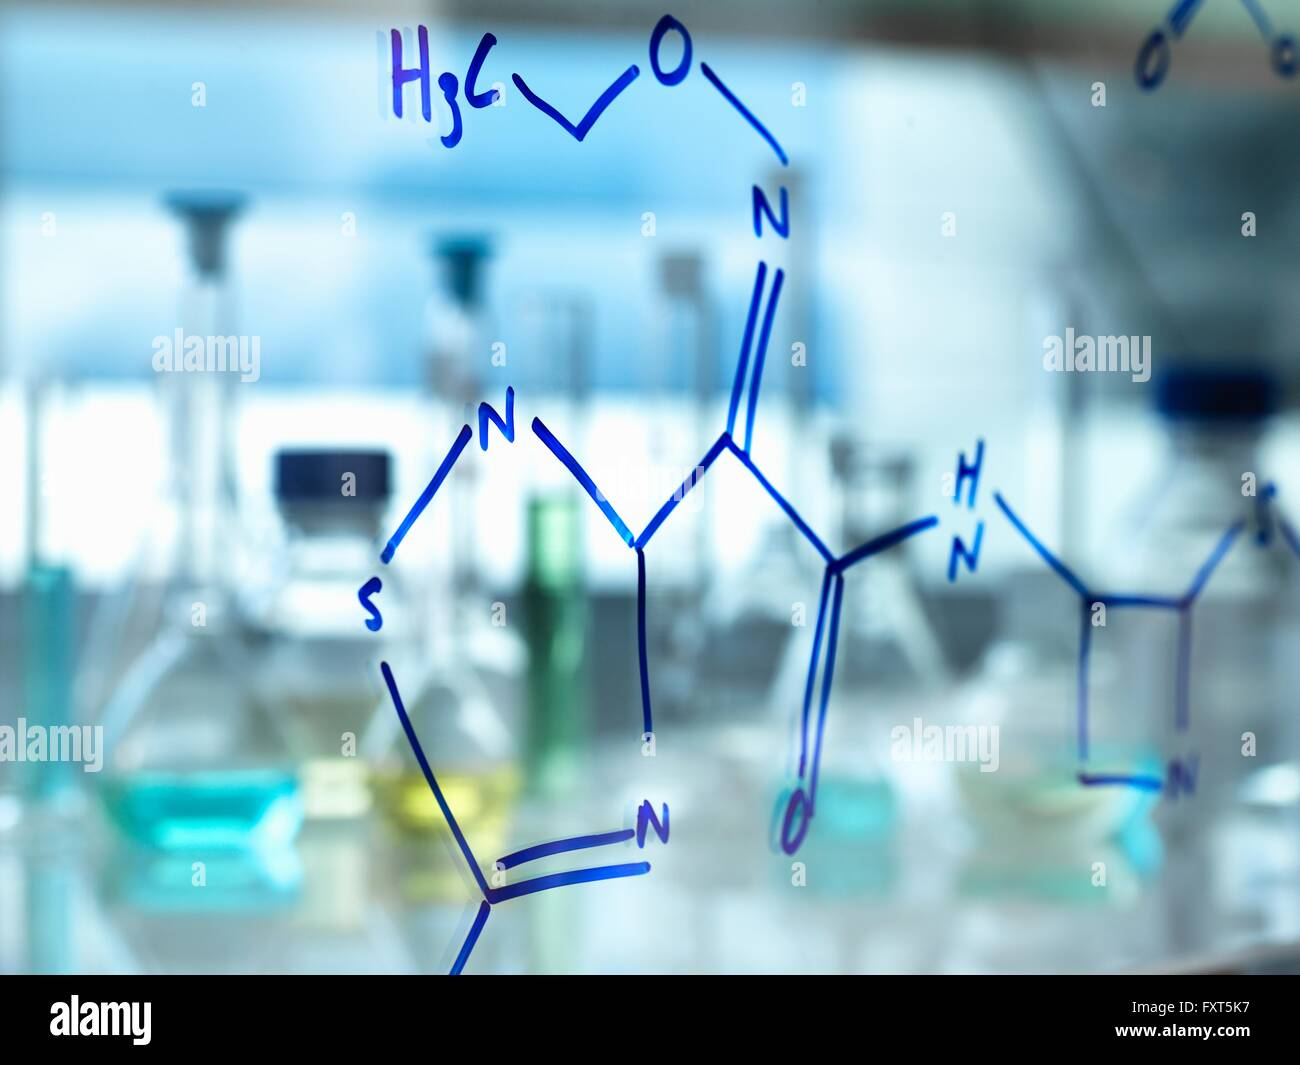 Chemical formula of antibiotic drug written on glass in laboratory - Stock Image